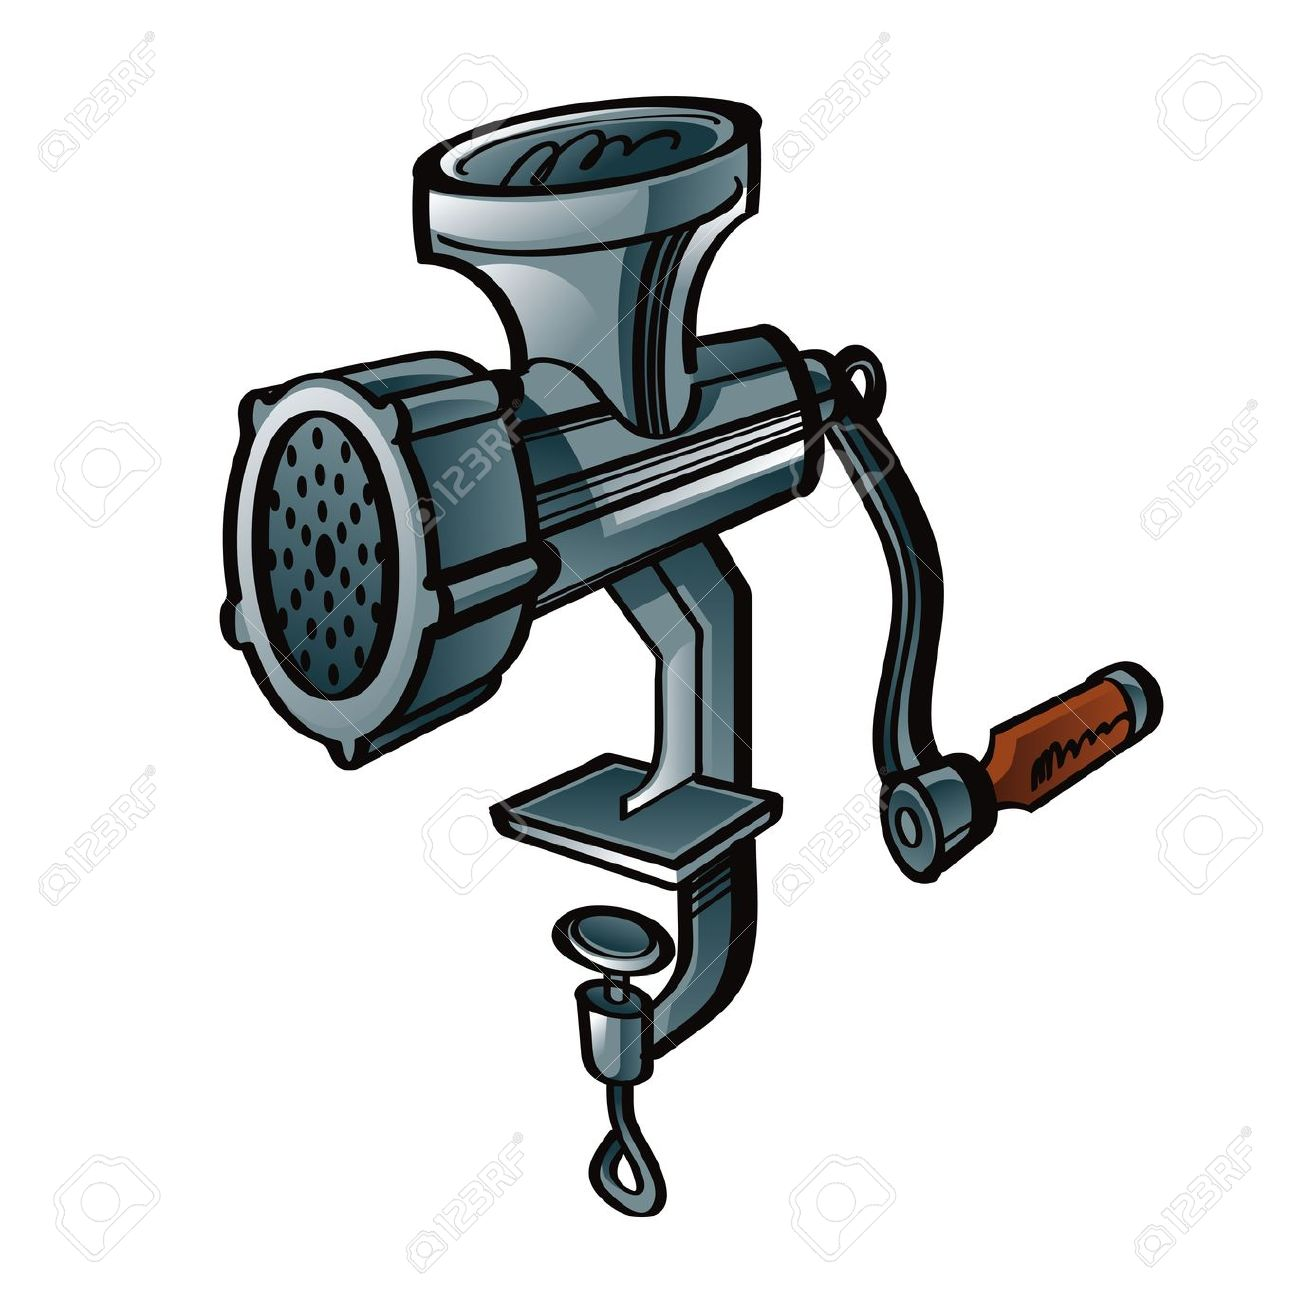 752 Meat Grinder Cliparts, Stock Vector And Royalty Free Meat.